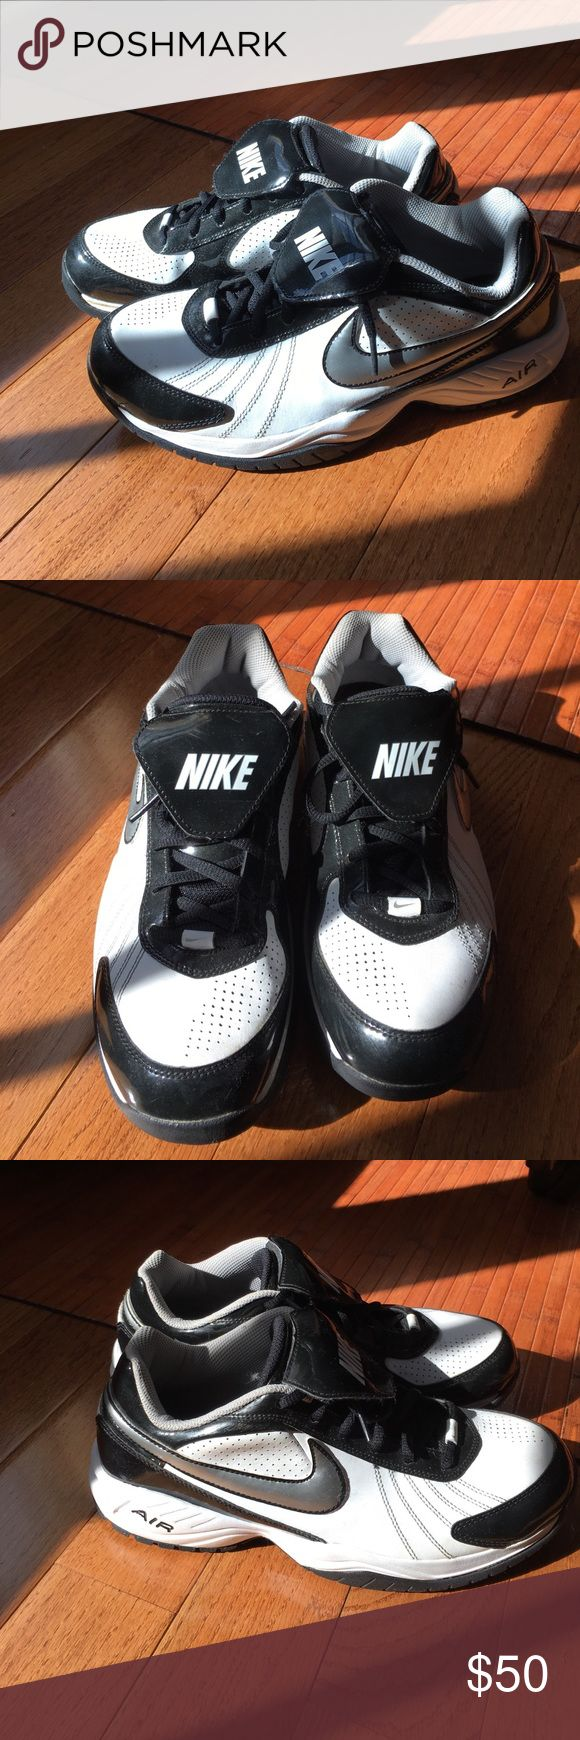 Men's Nike Air turf shoes These are men's sized 9.5 Nike turf shoes.   Used only once or twice for baseball.  In excellent used condition. Nike Shoes Athletic Shoes